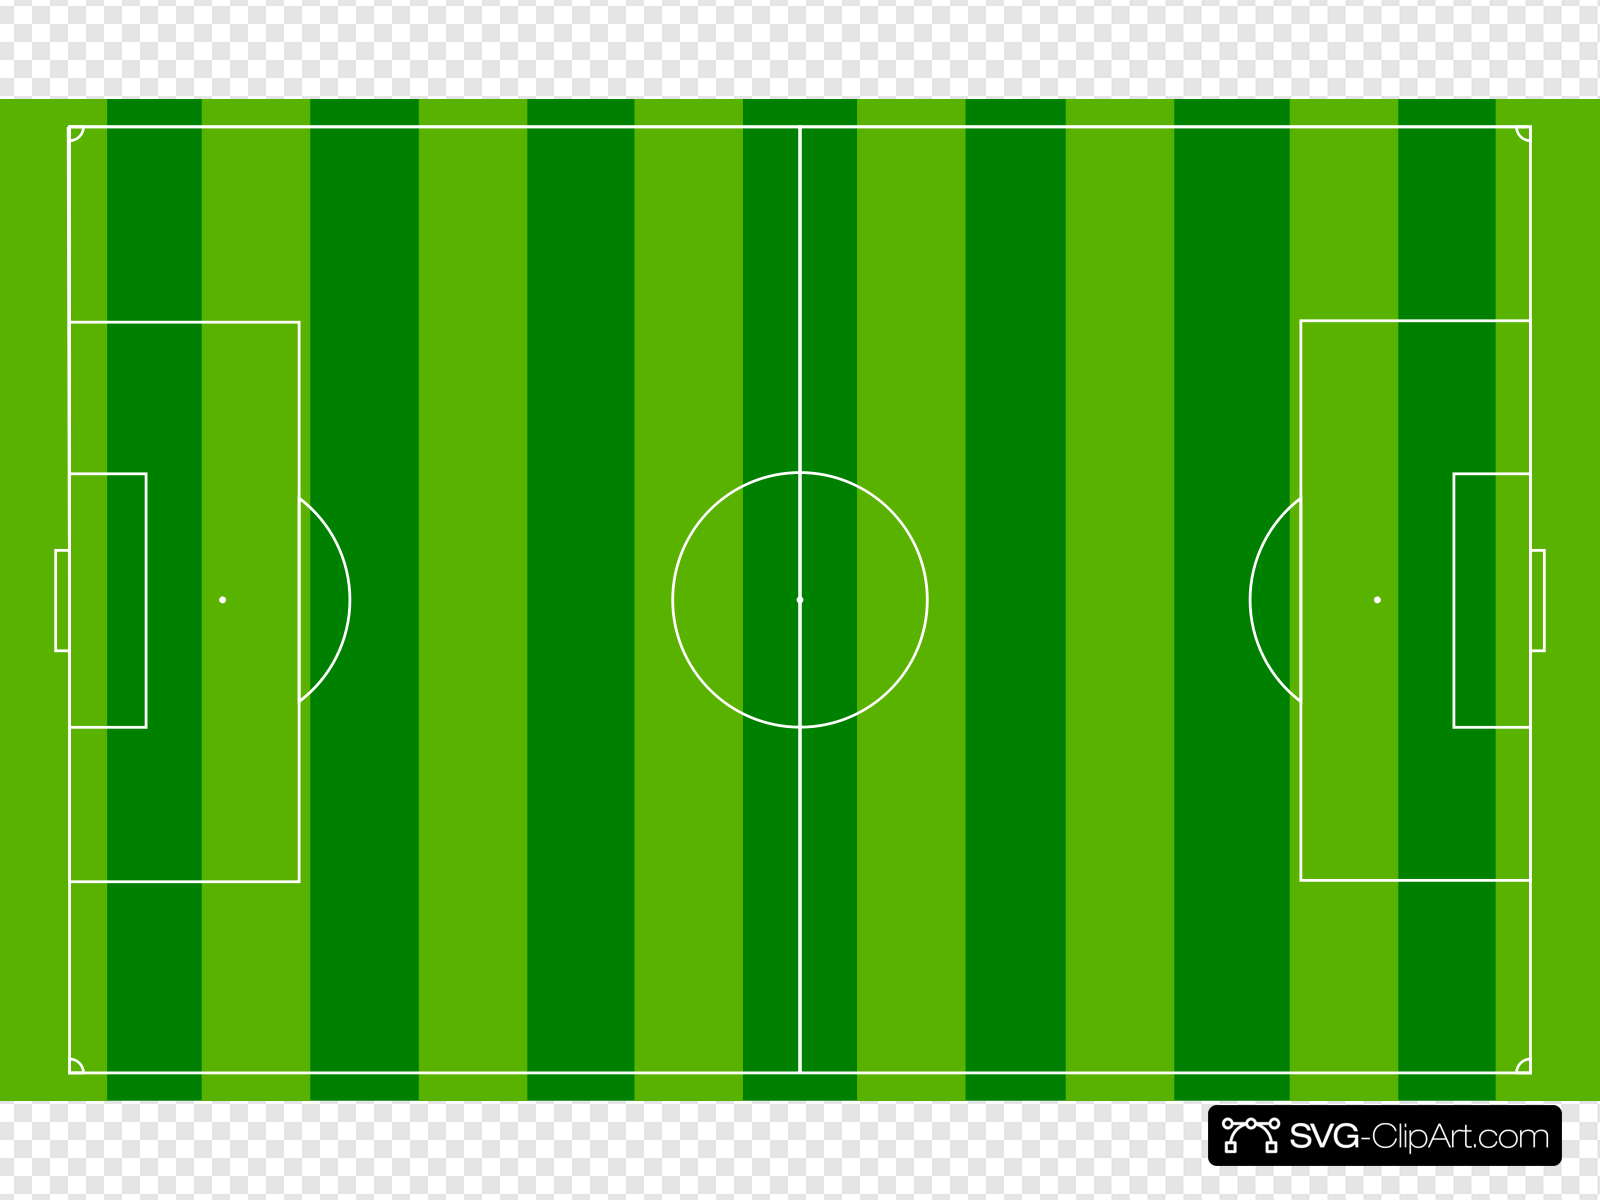 Football Pitch Clip art, Icon and SVG.